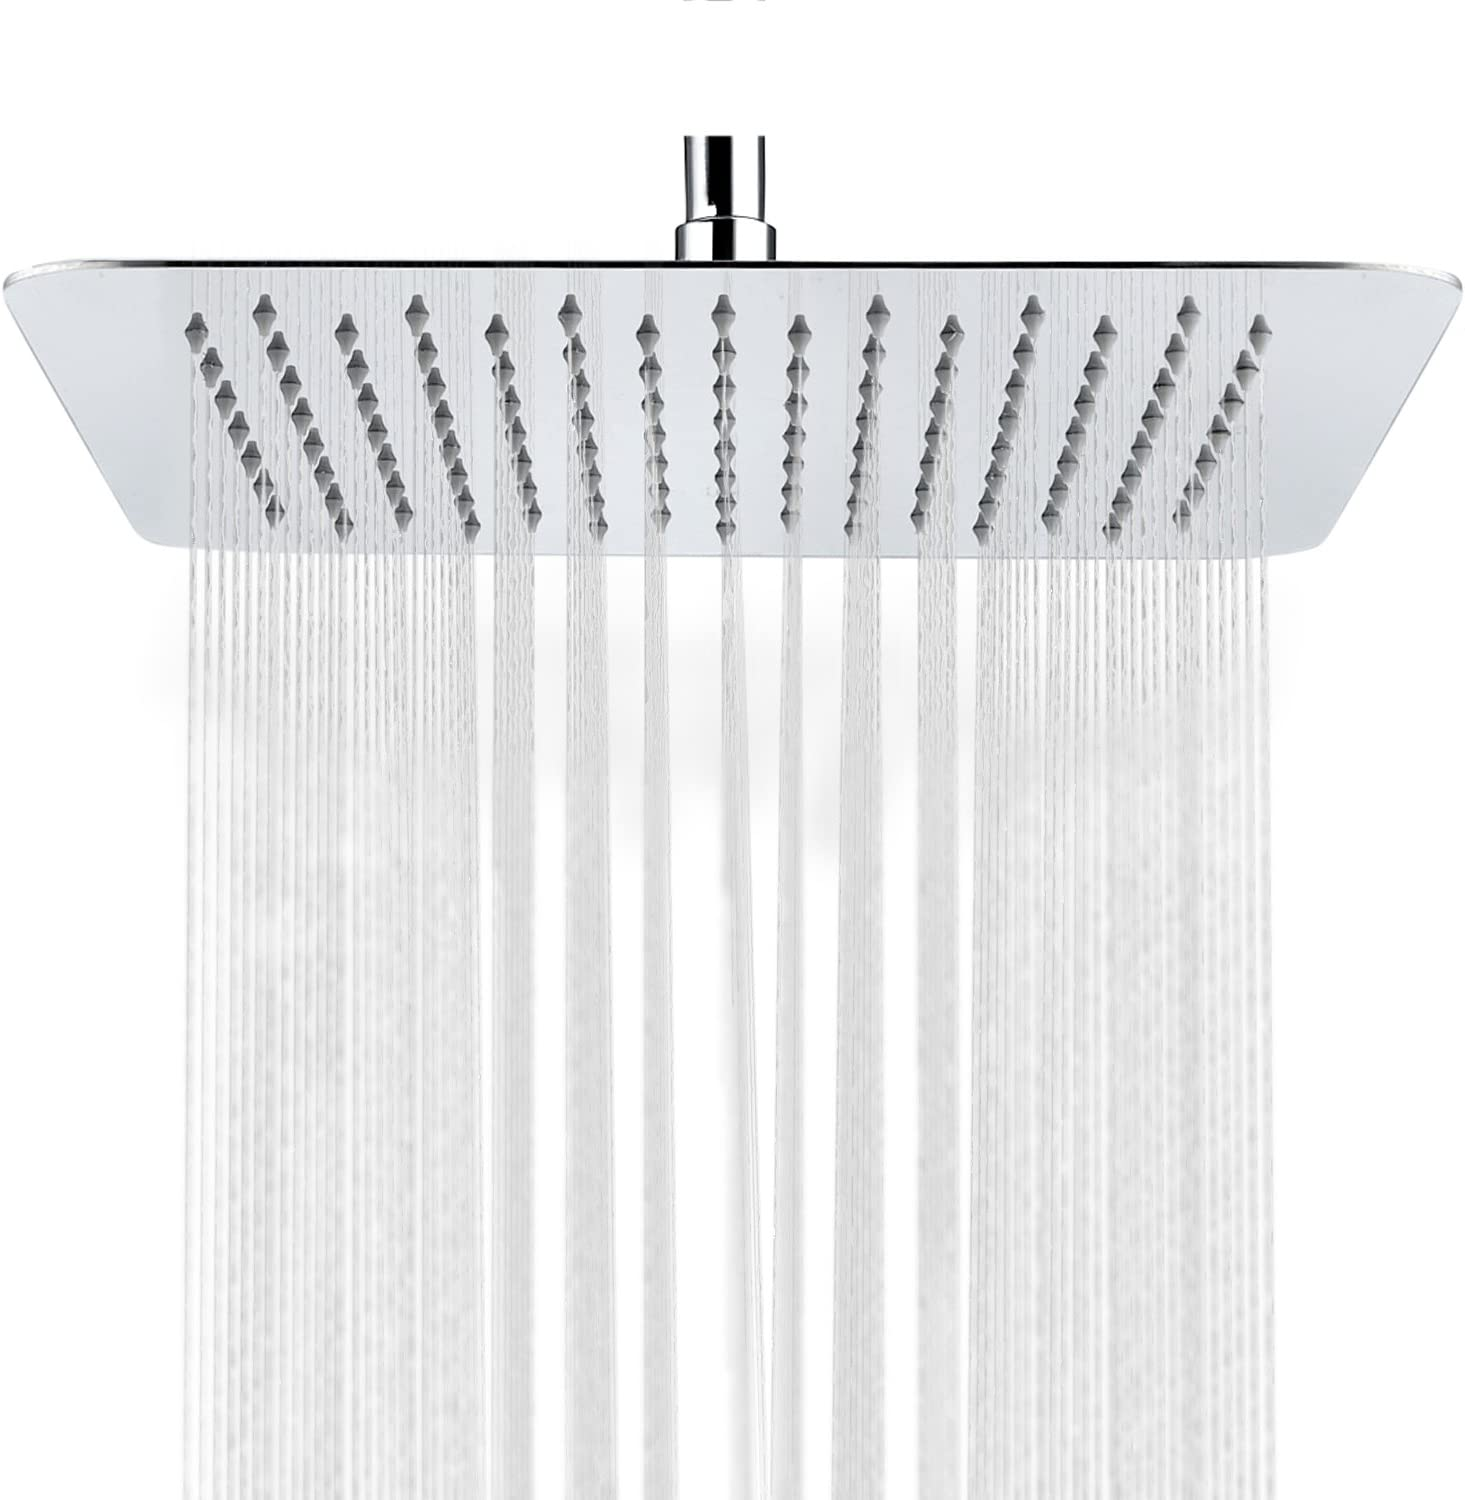 Best Rain Shower Head: SR SUNRISE 10 Inch Rain Shower Head